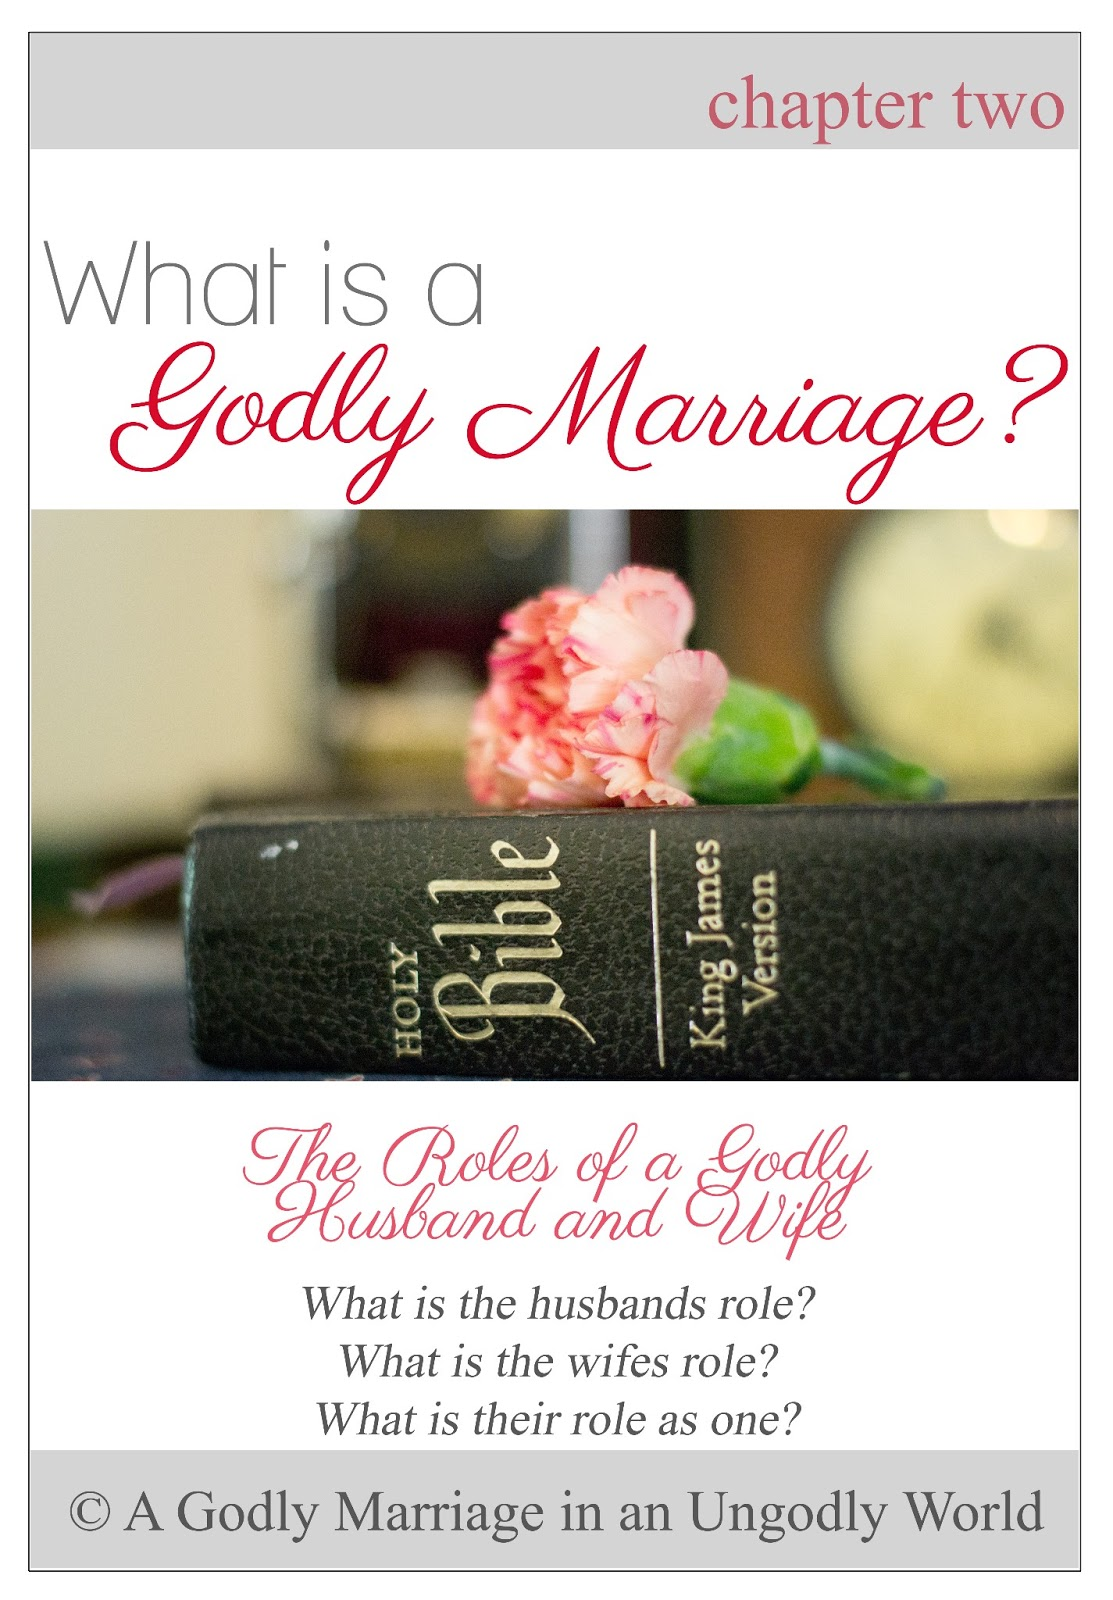 the biblical marriage and the role of the religion in the purpose to the marriage in the modern soci Religious marriage recognizes and creates the rights and obligations intrinsic to matrimony before that religion religious marriage is known variously as sacramental marriage in catholicism, nikah in islam, nissuin in judaism, and various other names in other faith traditions, each with their own constraints as to what constitutes, and who.